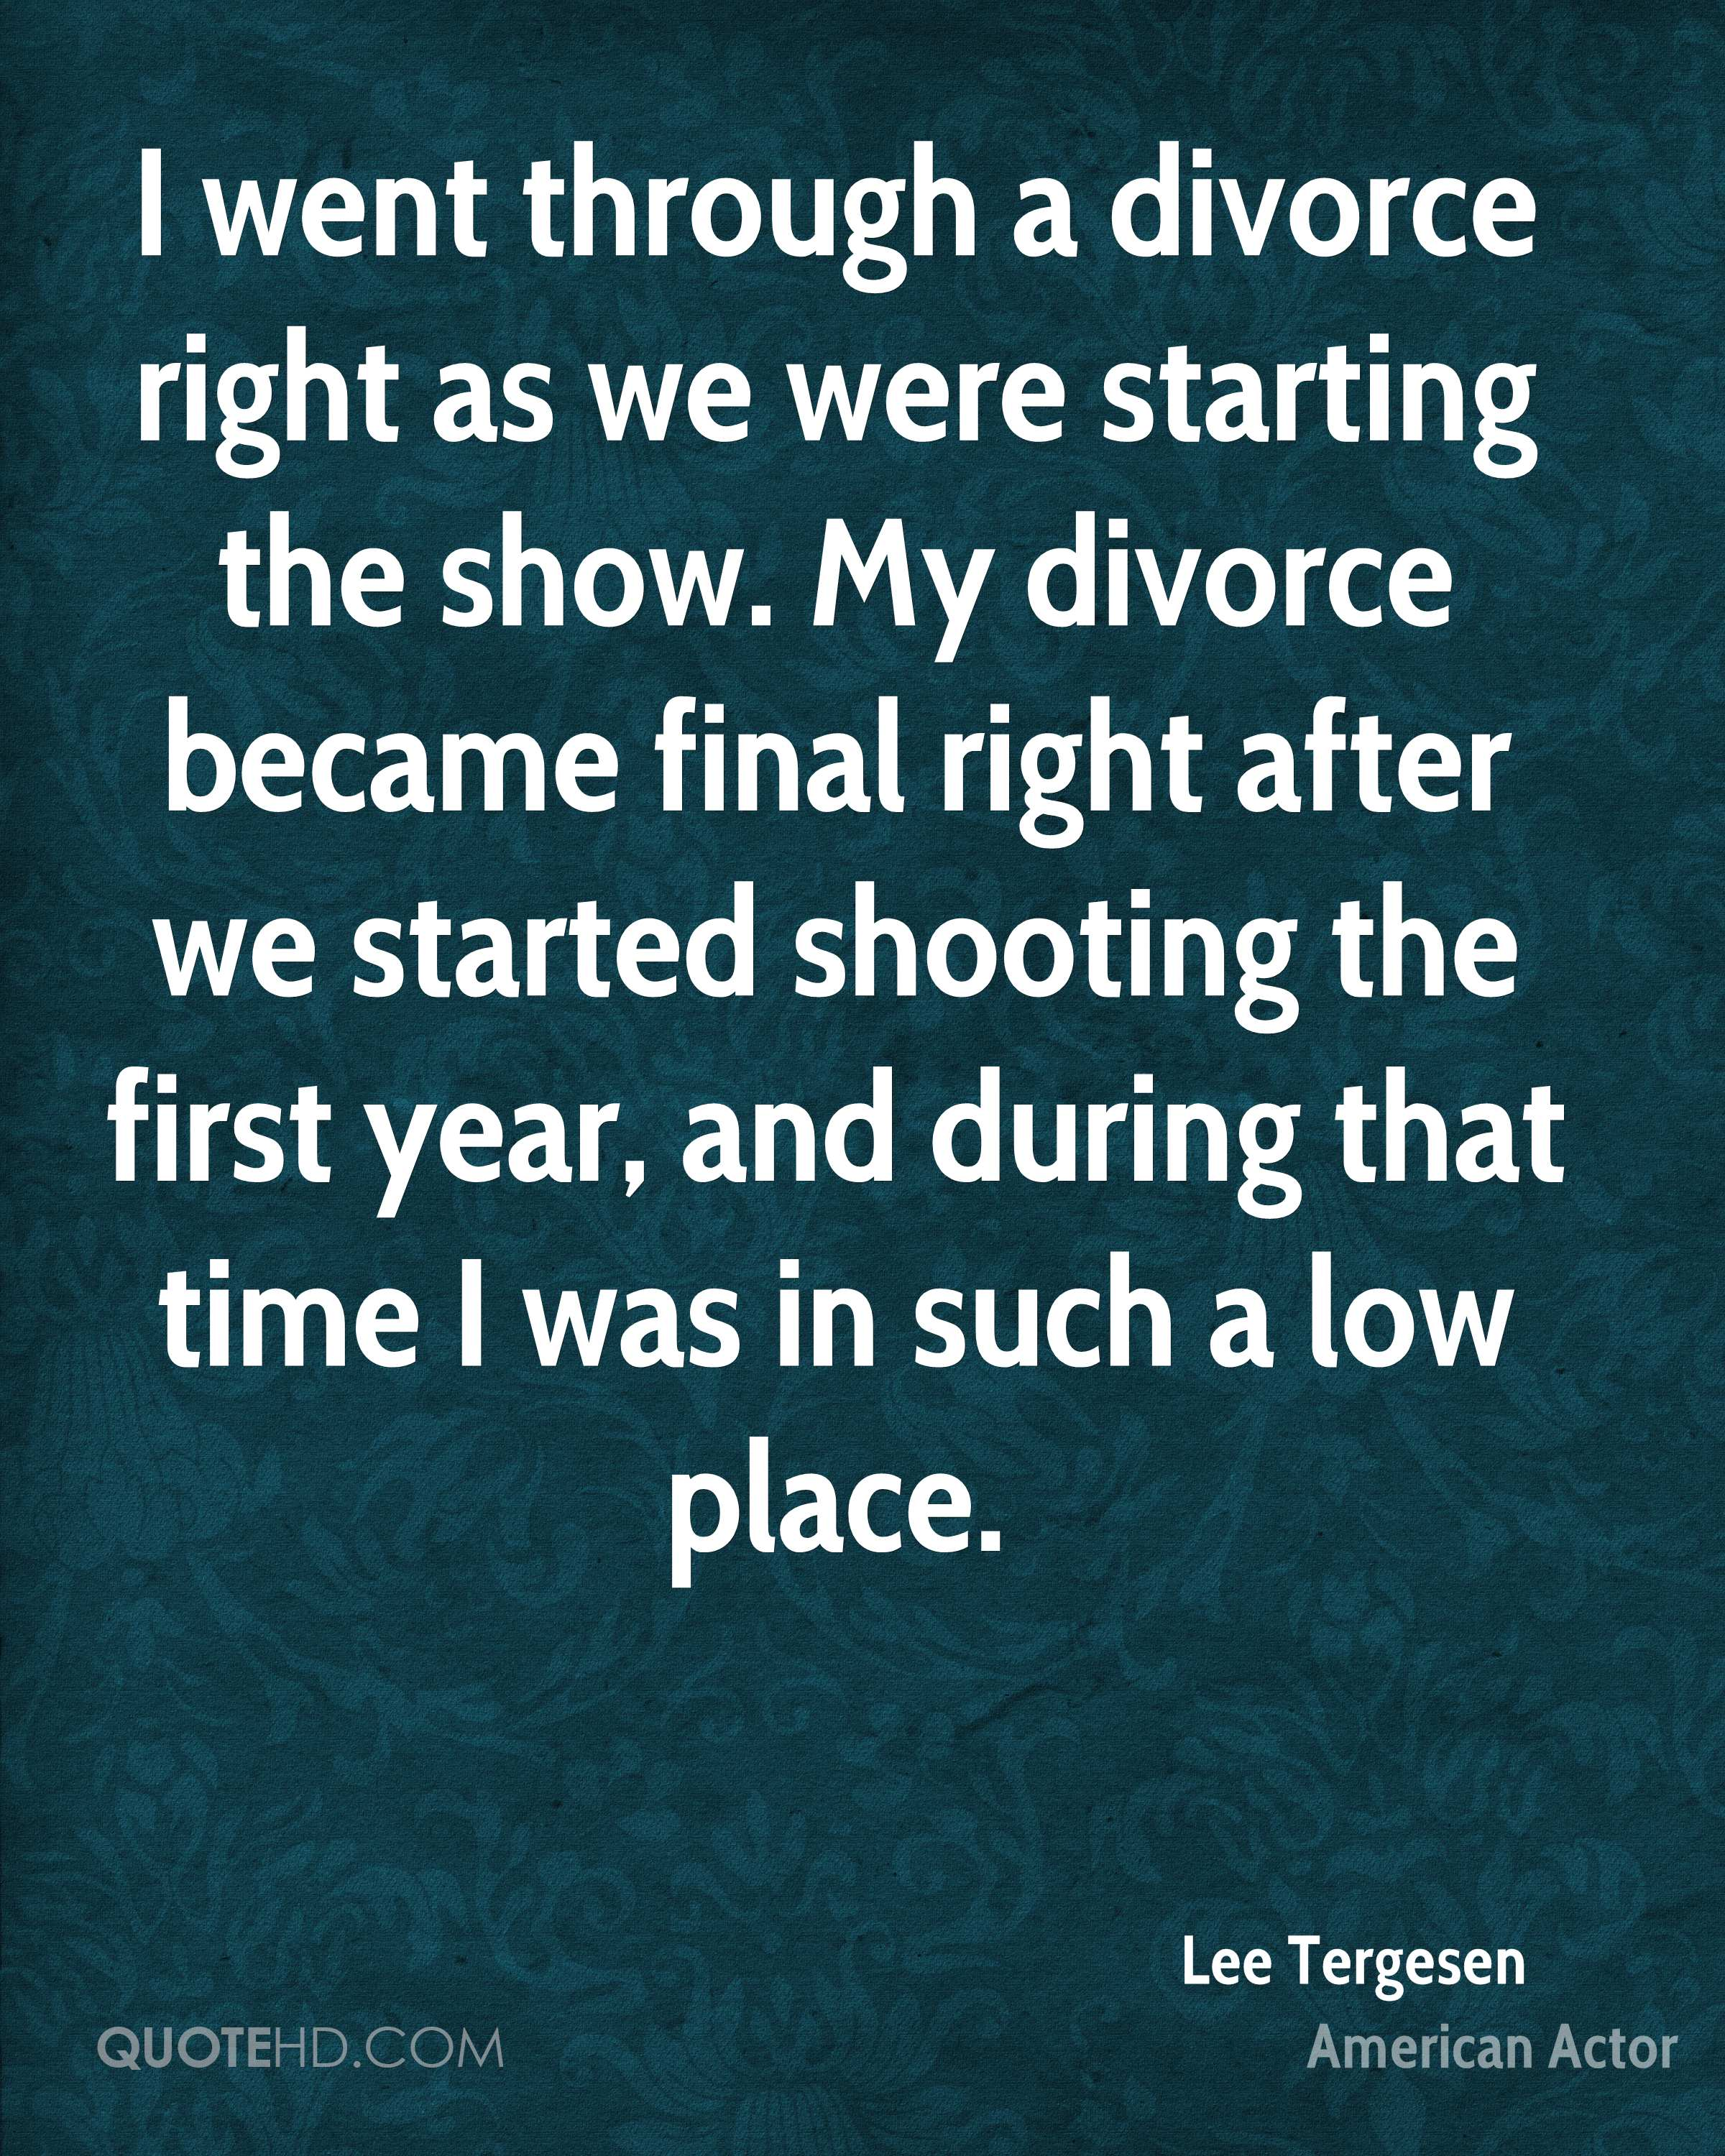 I went through a divorce right as we were starting the show. My divorce became final right after we started shooting the first year, and during that time I was in such a low place.